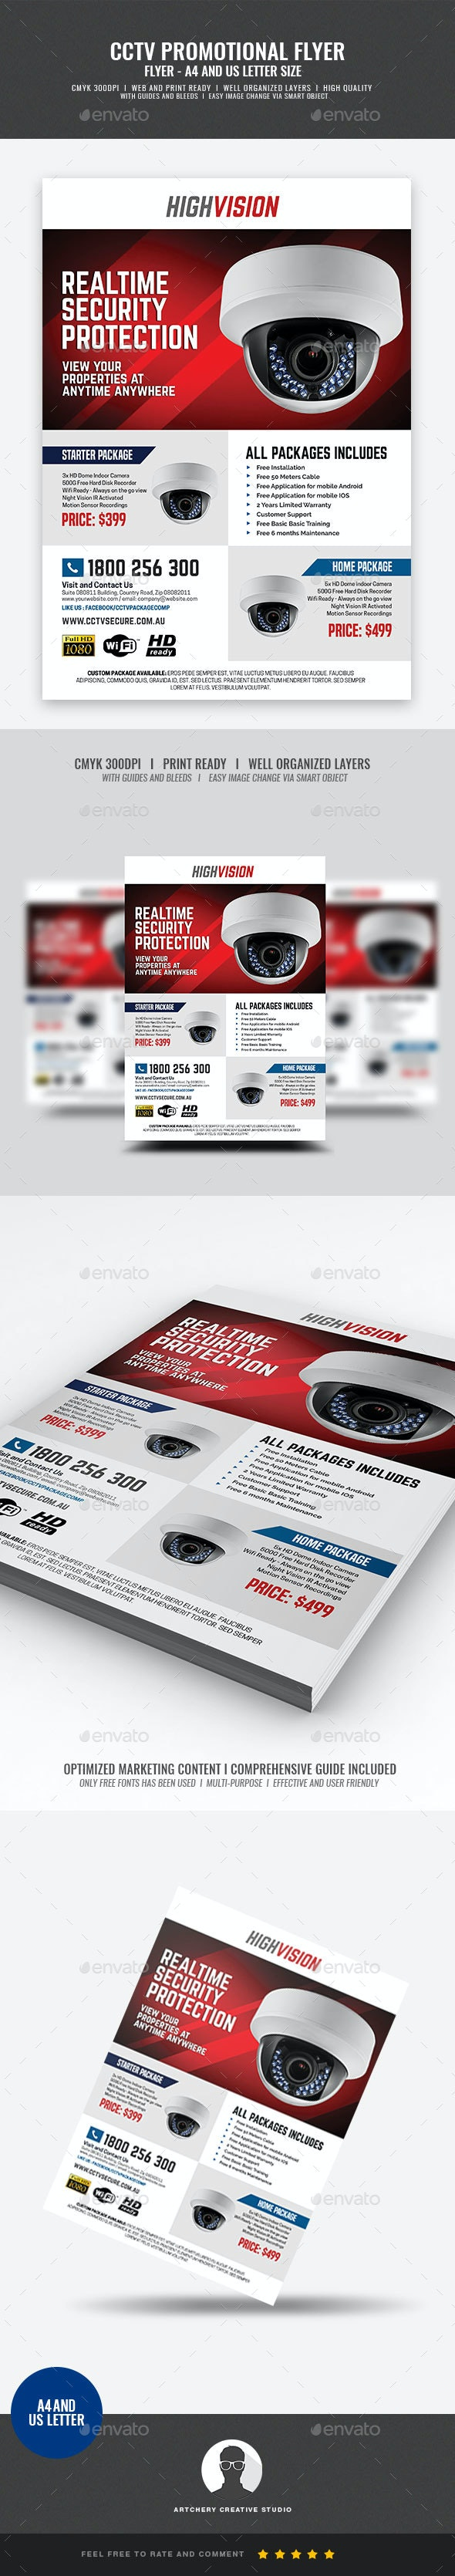 Home and Office CCTV Camera Flyer - Commerce Flyers